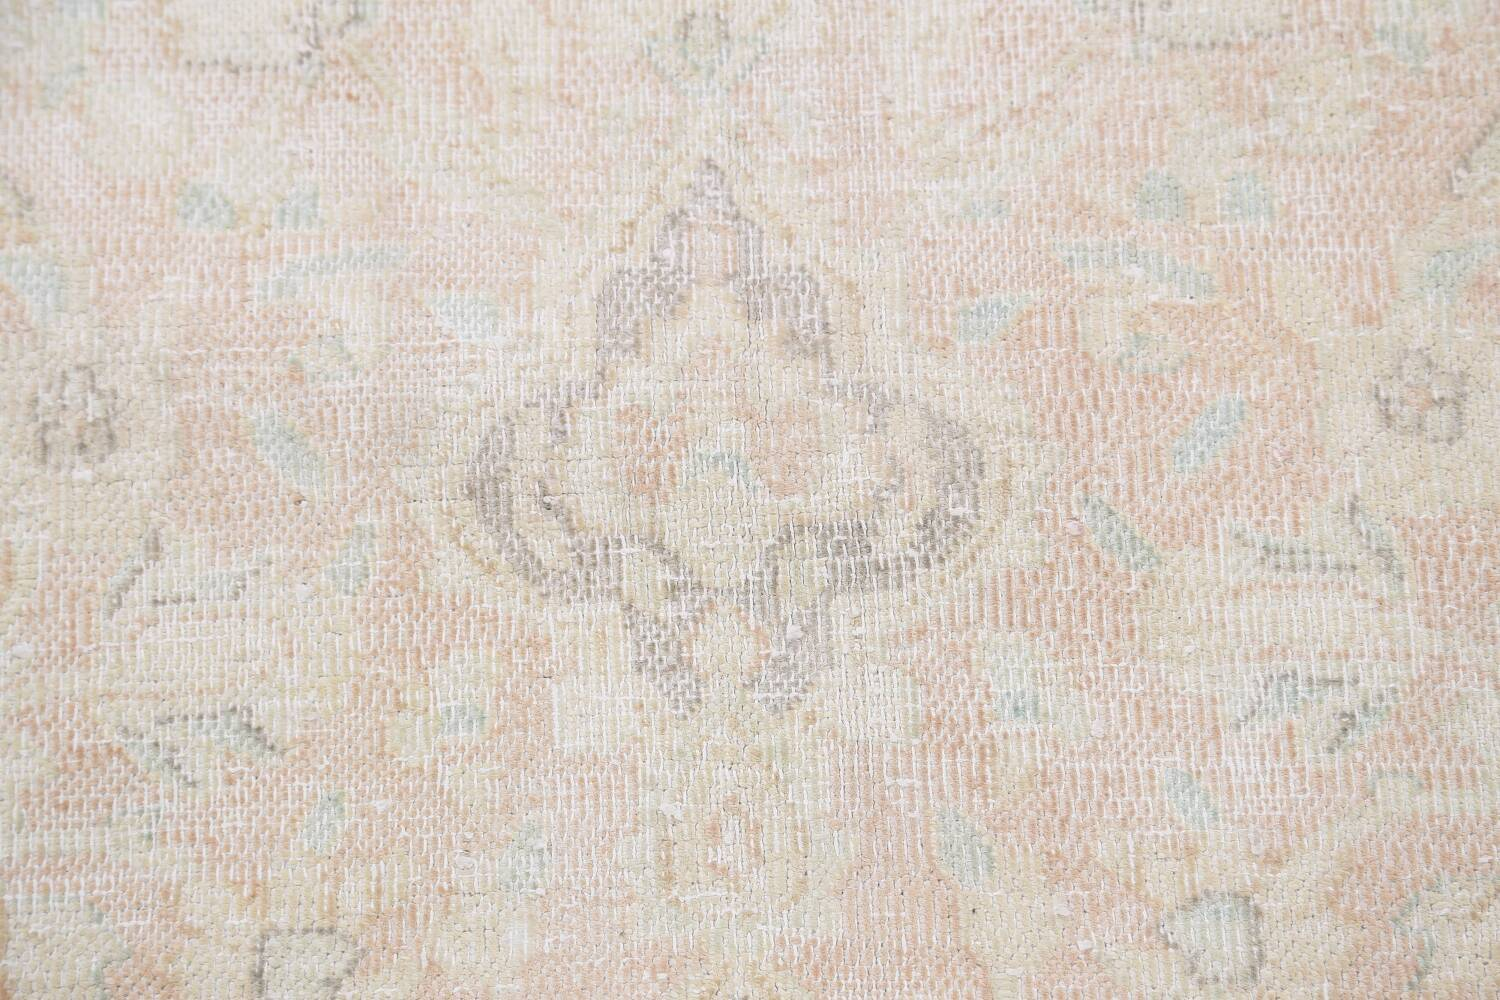 Antique Muted Distressed Kerman Persian Area Rug 10x12 image 11